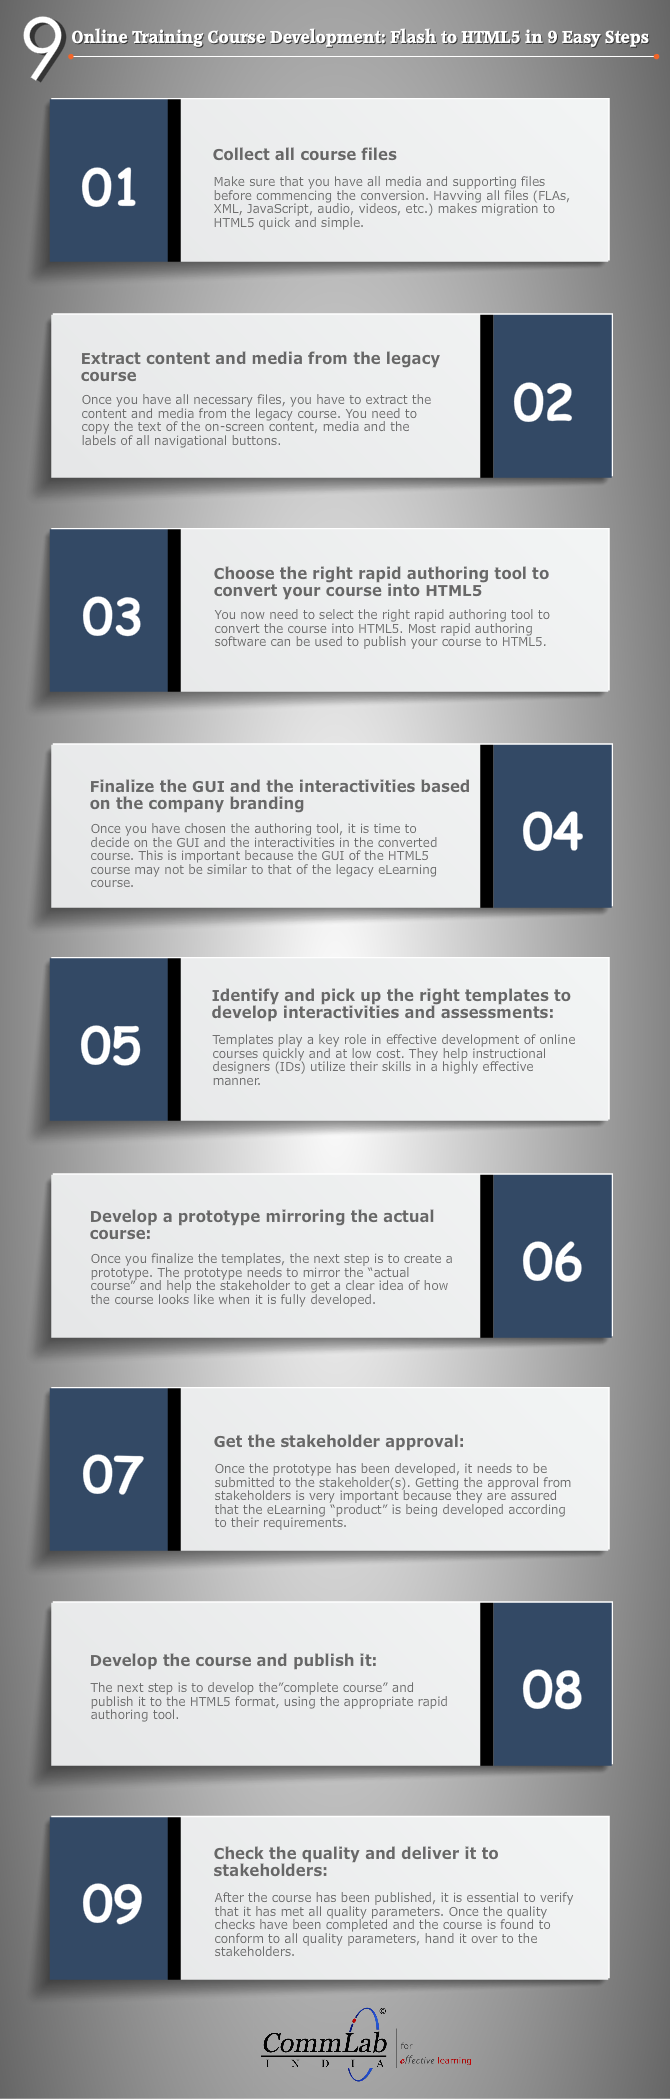 Online Training Course Development: Flash to HTML5 in 9 Easy Steps [Infographic]